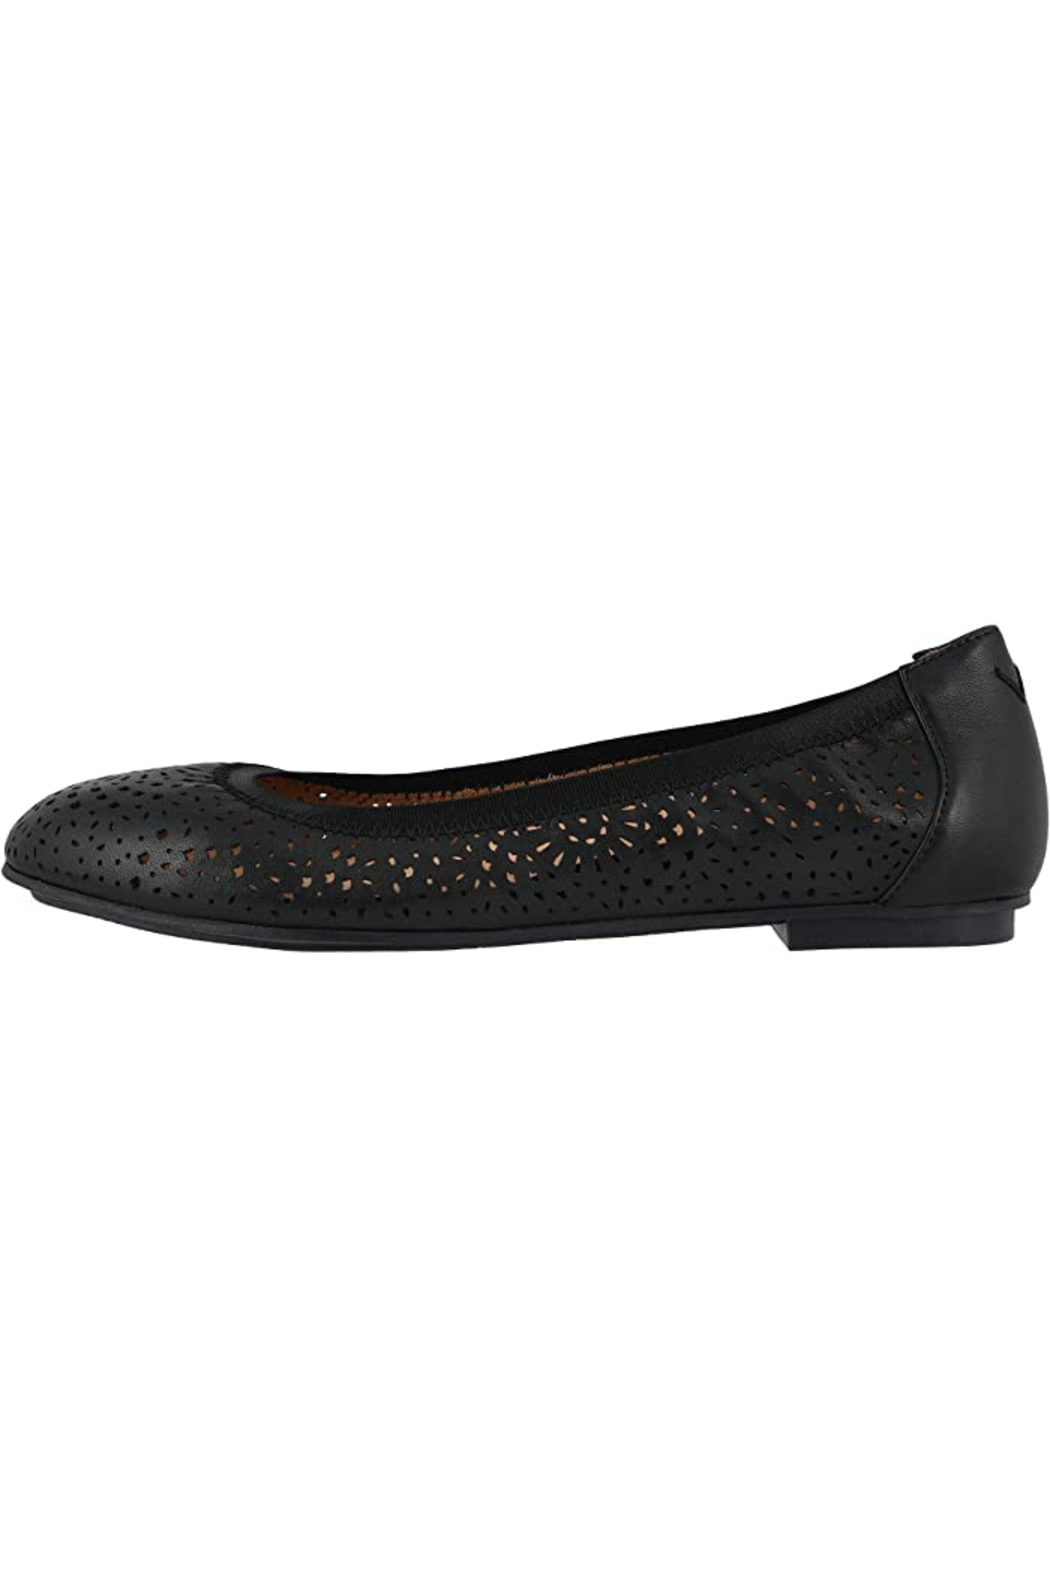 Vionic Robyn Perf Ballet Flat - Side Cropped Image